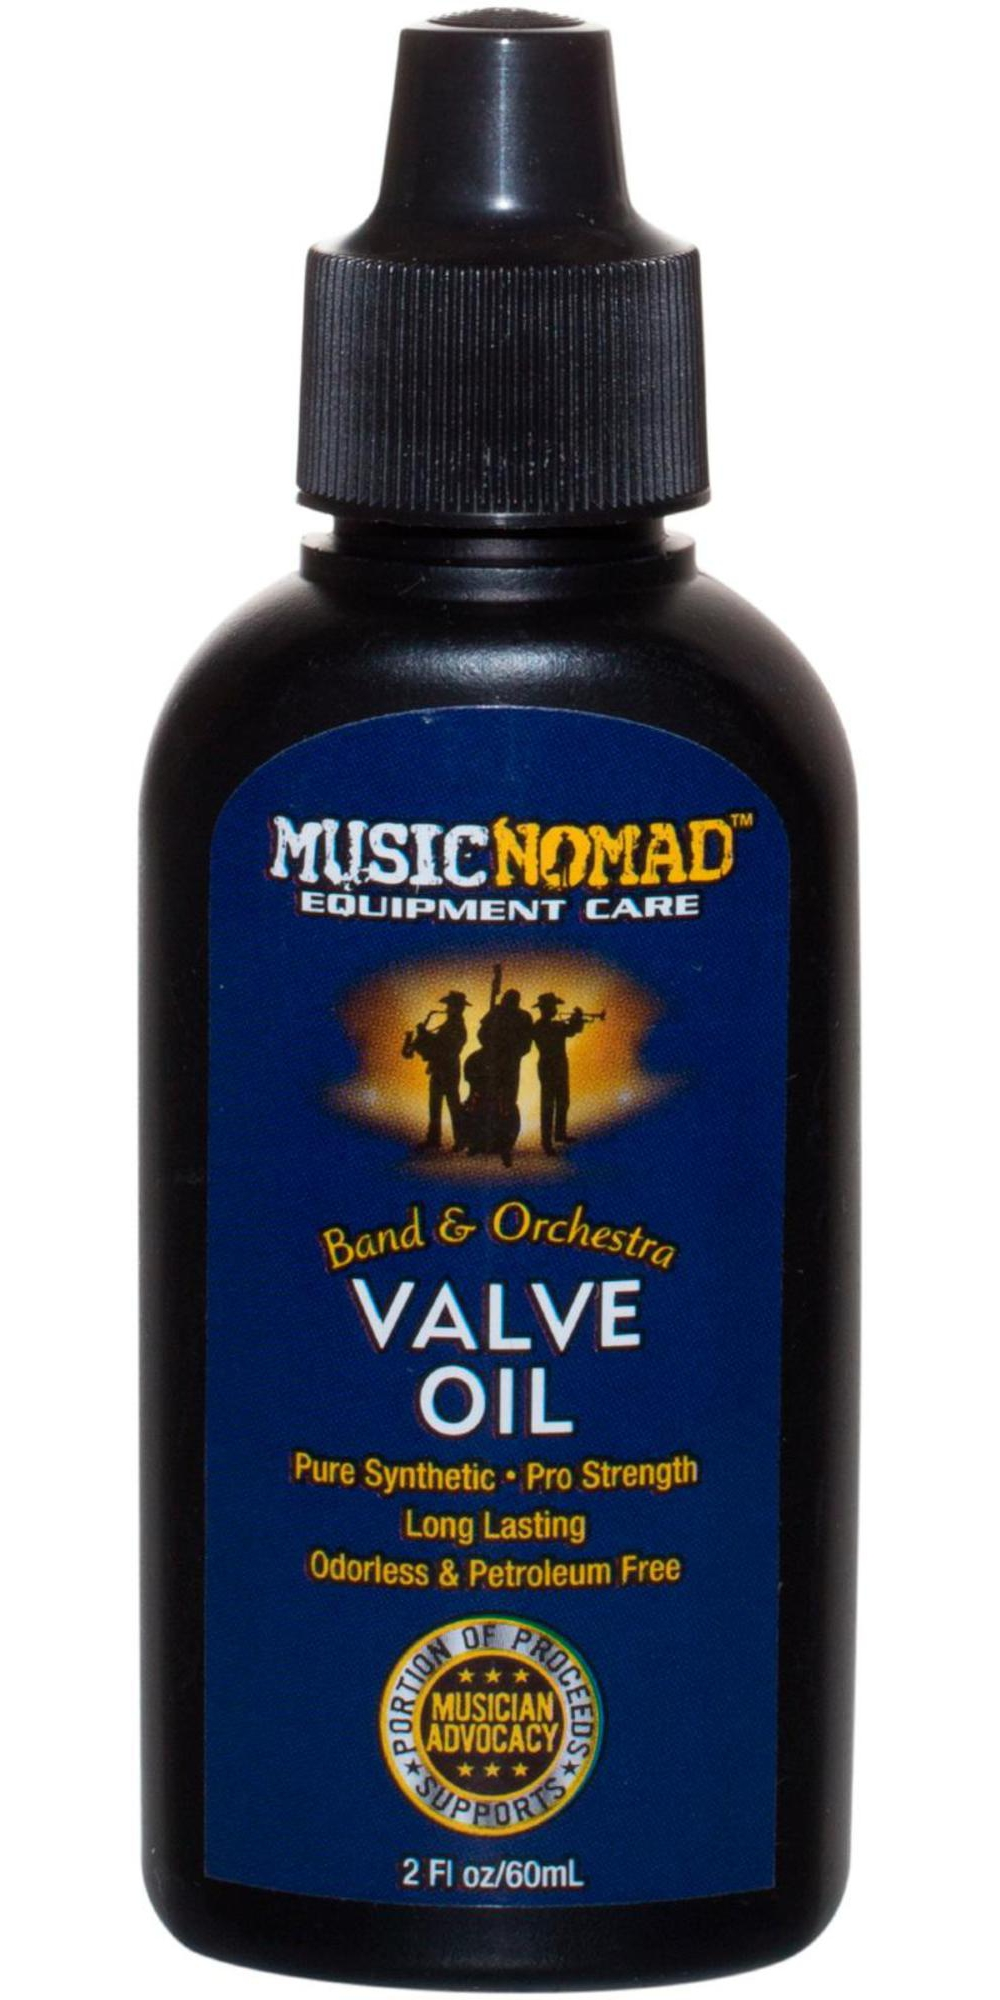 Music Nomad Pro Strength Pure Synthetic Valve Oil 2oz. Bottle by Music Nomad